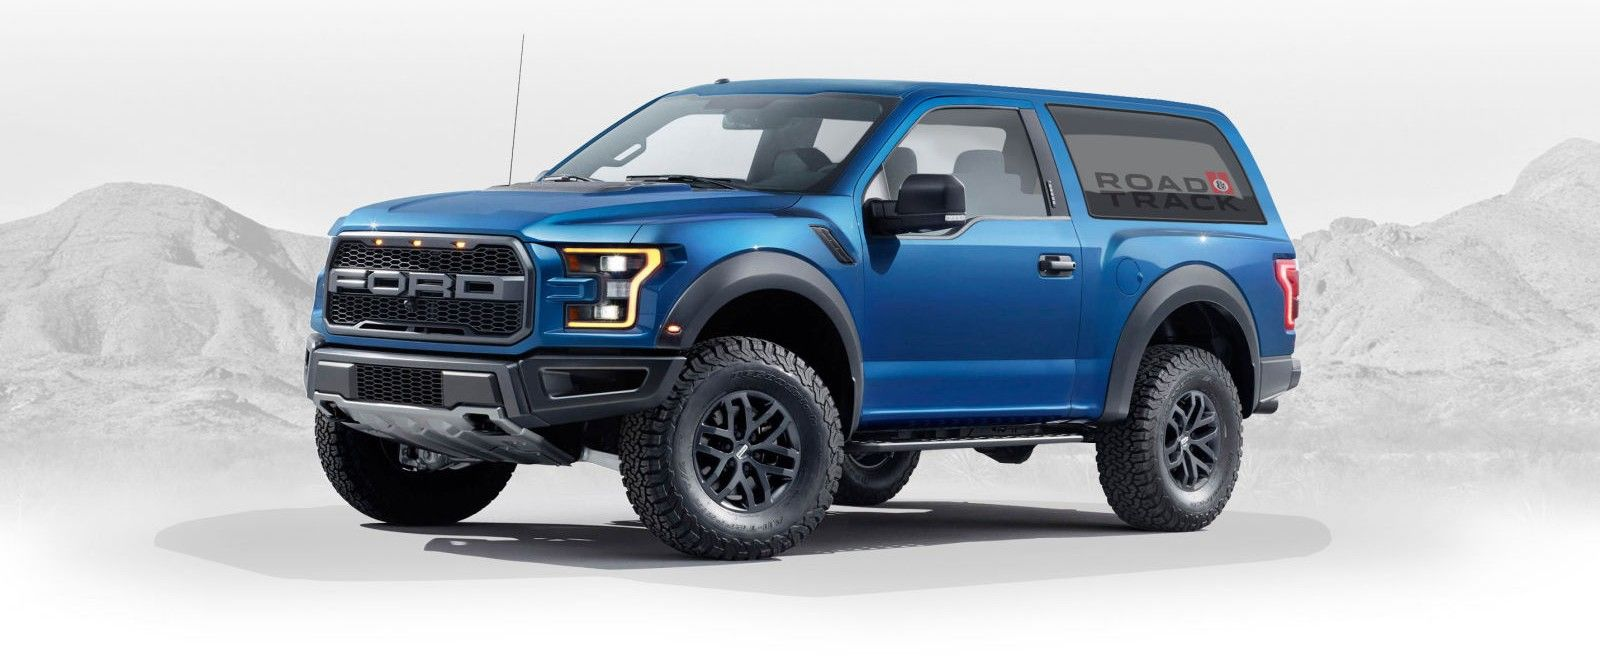 Dana Axles Coming To New Ford Bronco Should Jeep Be Worried Ford Bronco Ford Bronco Concept New Bronco